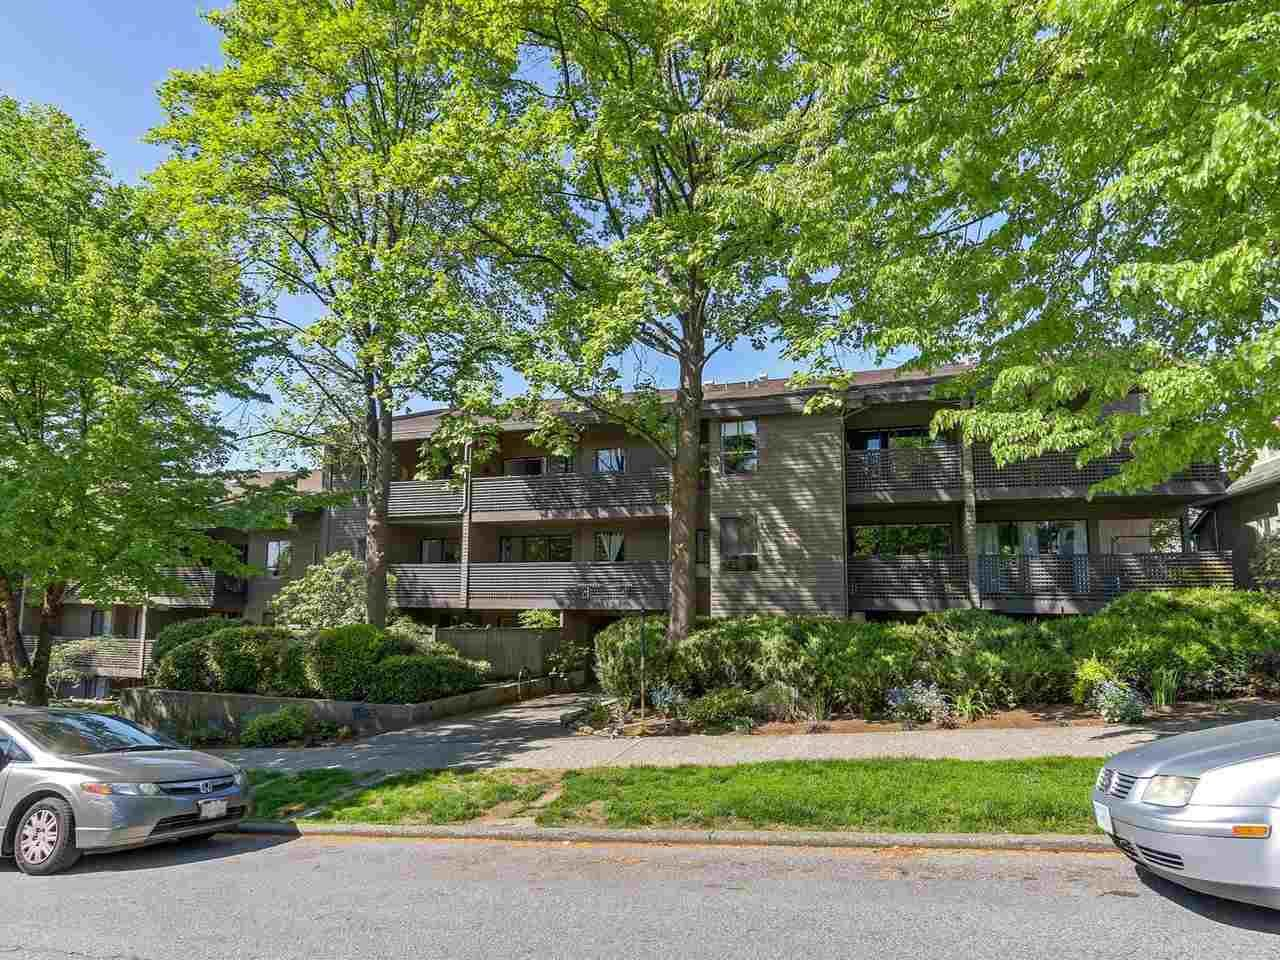 """Main Photo: 317 1549 KITCHENER Street in Vancouver: Grandview VE Condo for sale in """"DHARMA"""" (Vancouver East)  : MLS®# R2290285"""